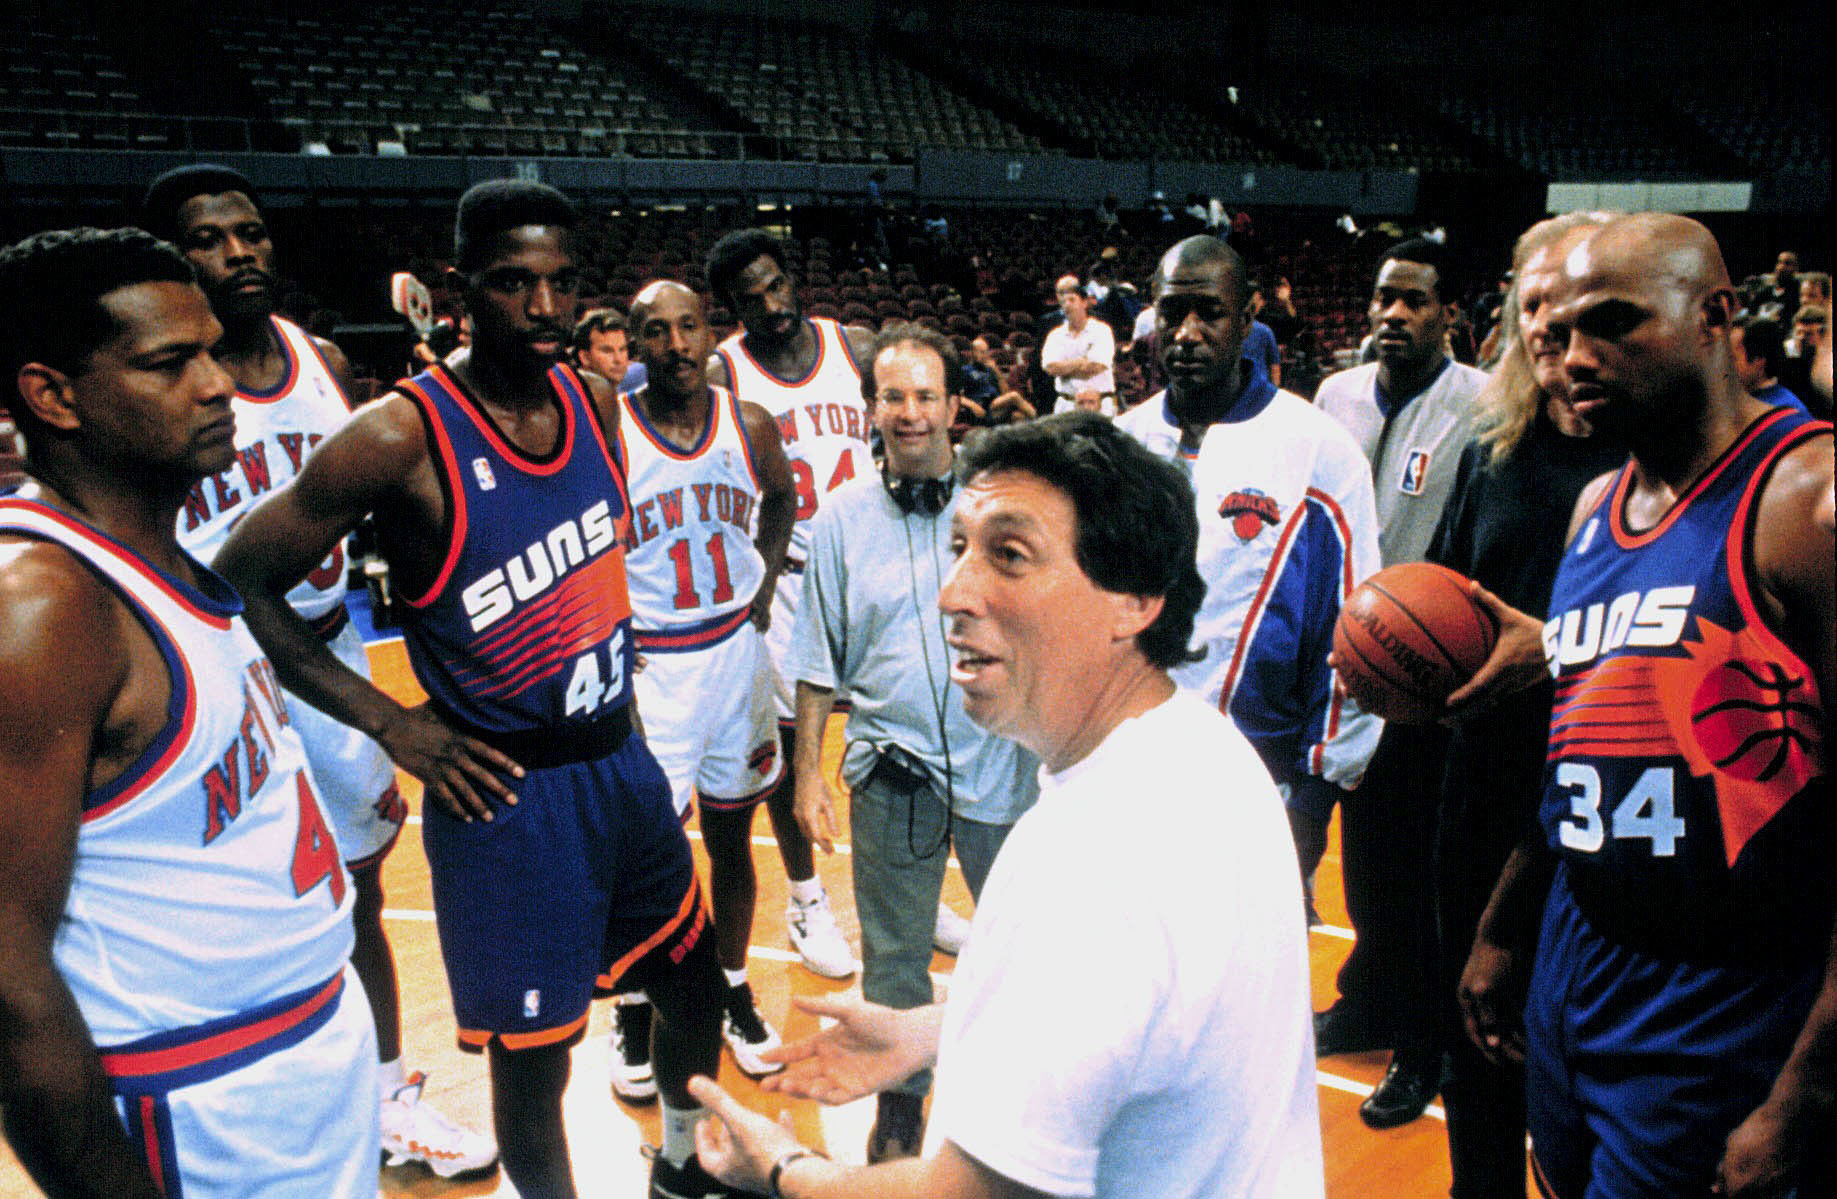 IVAN REITMAN & BASKETBALLERS SPACE JAM